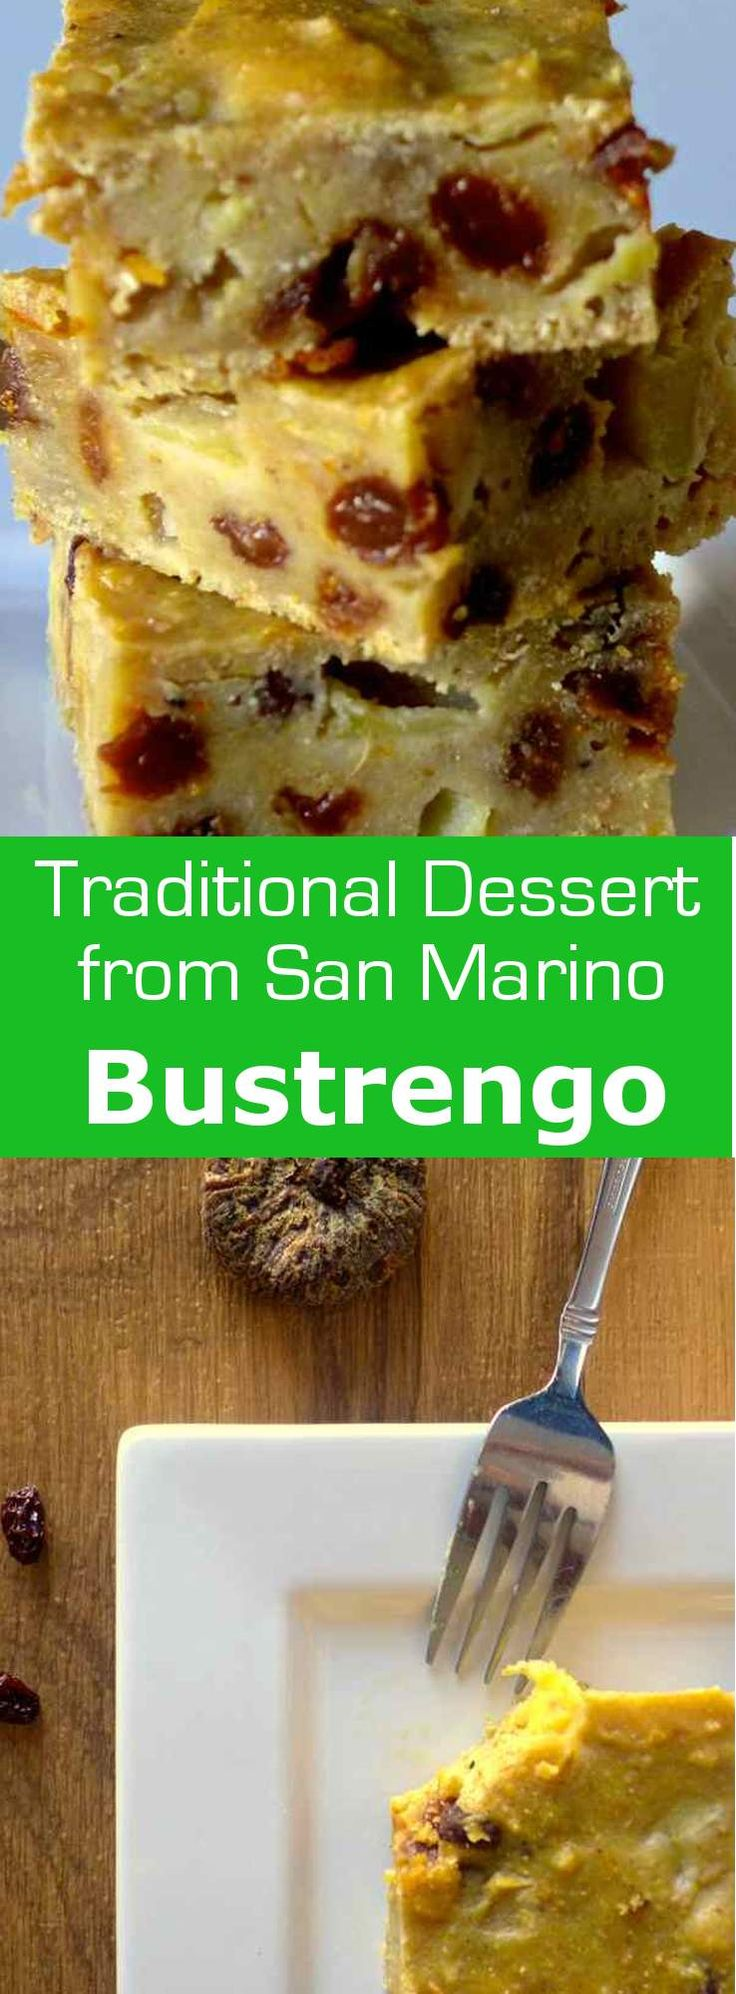 Bustrengo is a fruit cake from San Marino as well as Bologna that is eaten year-round but it is also a traditional Christmas cake. #dessert #christmas #SanMarino #196flavors